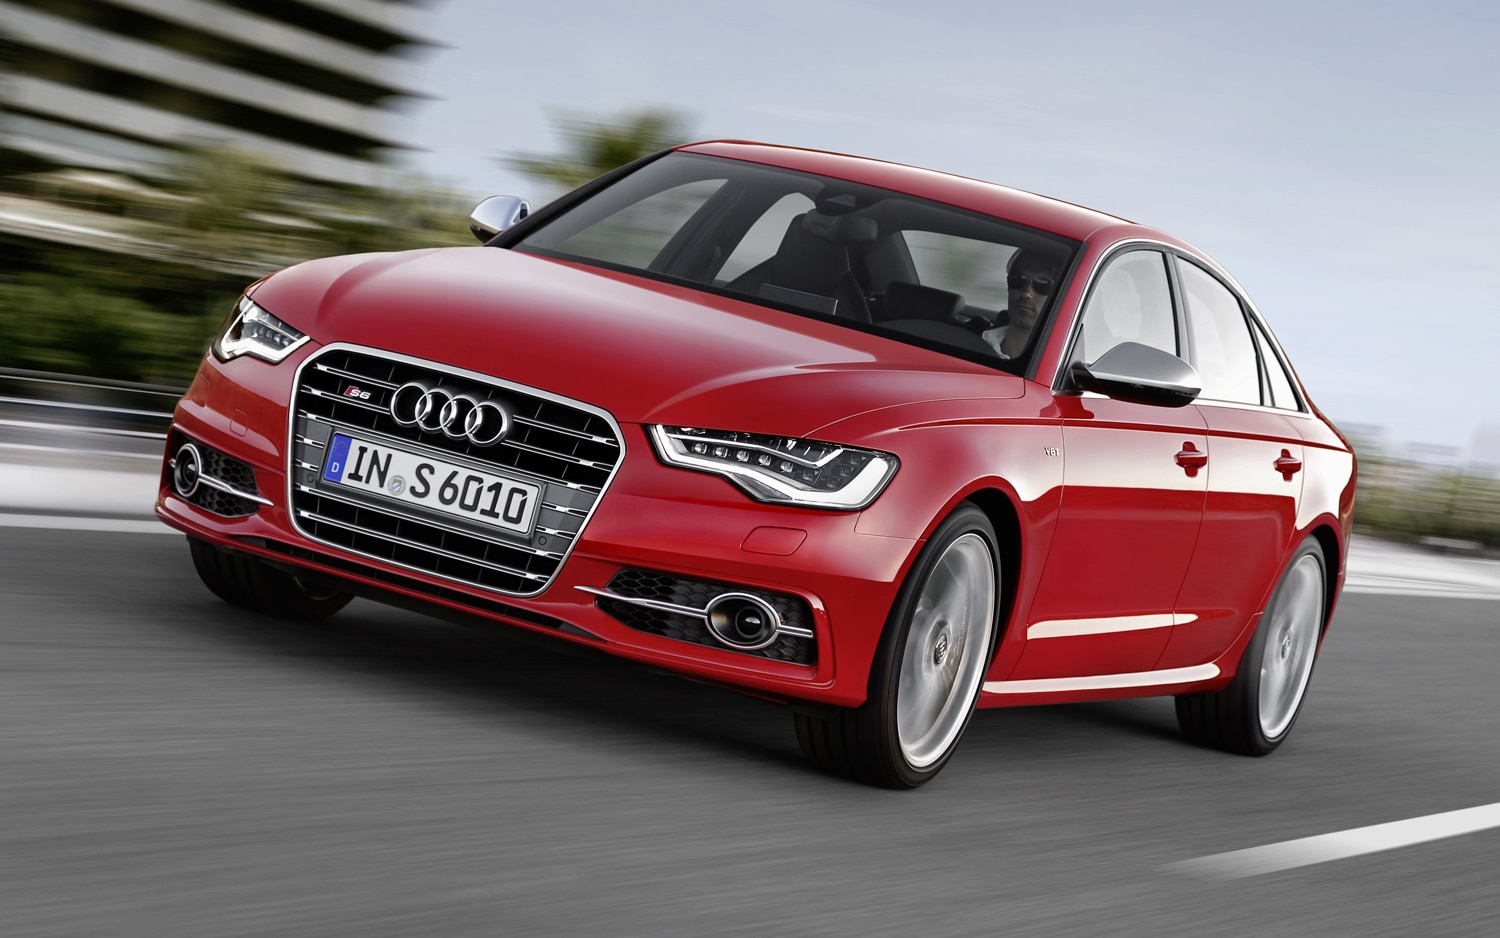 2012 Audi S6 Front View1